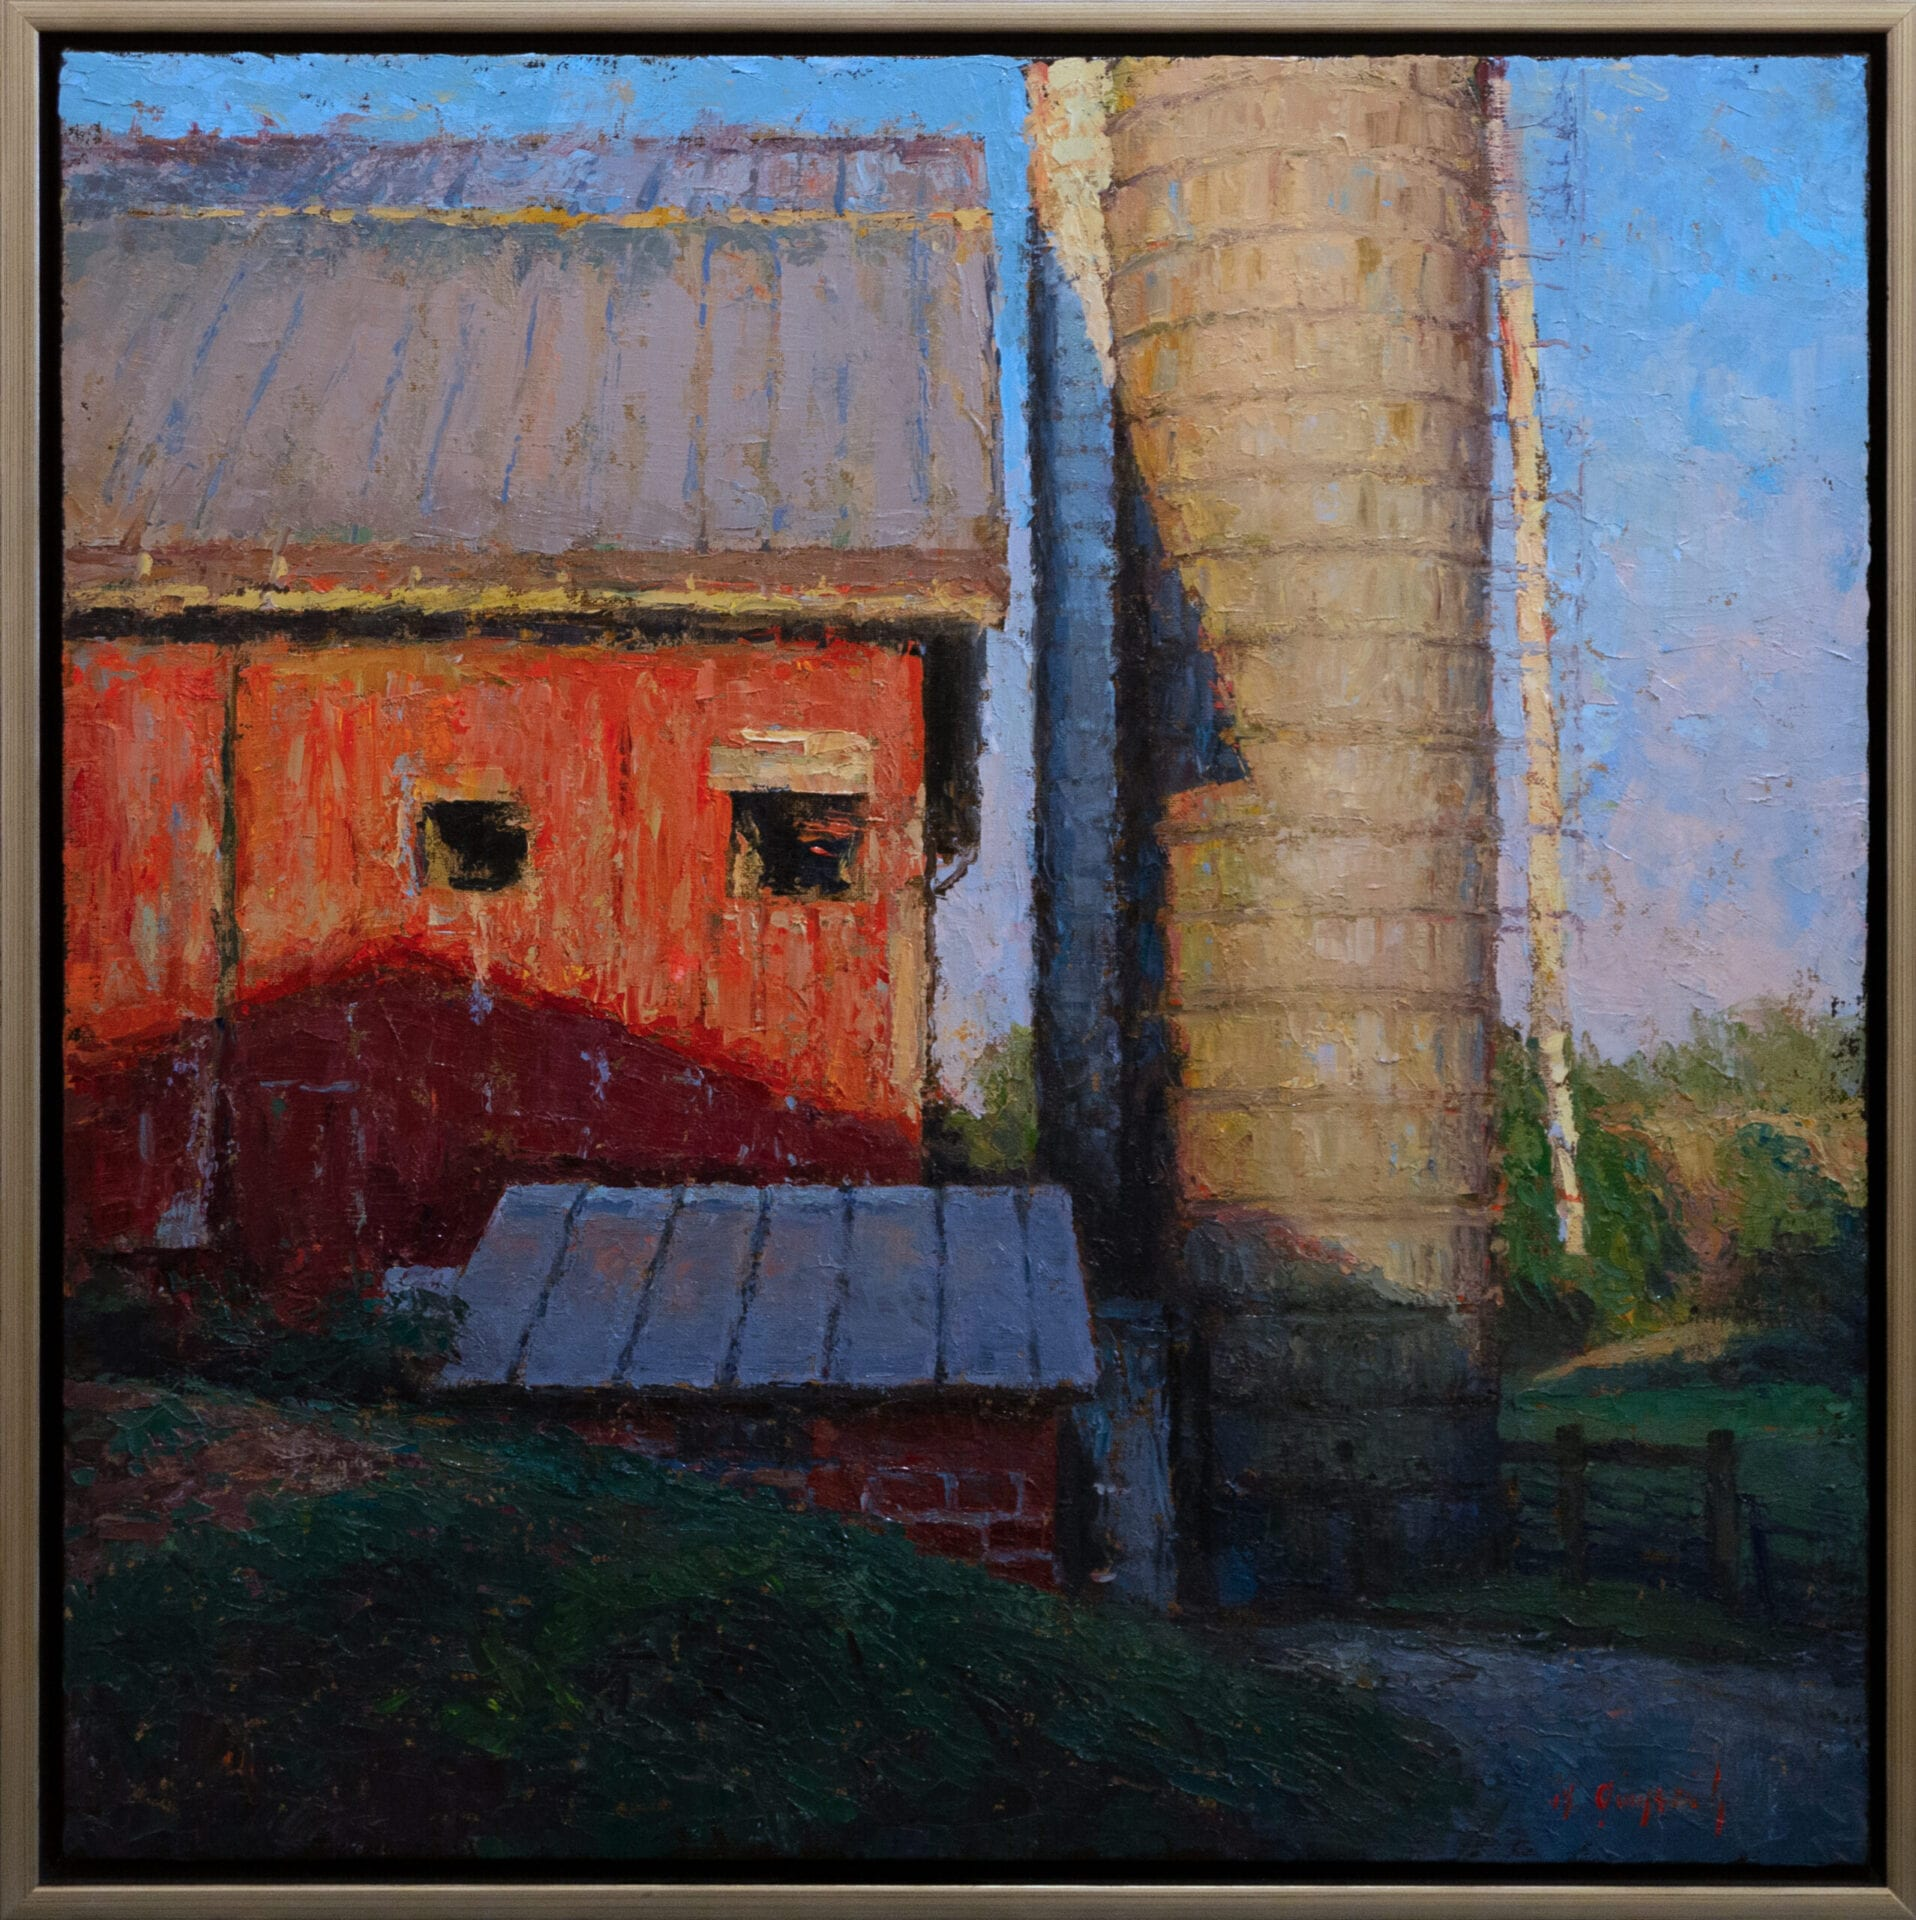 The Red Barn | Mark Gingerich | Oil on Canvas | 30 x 30""